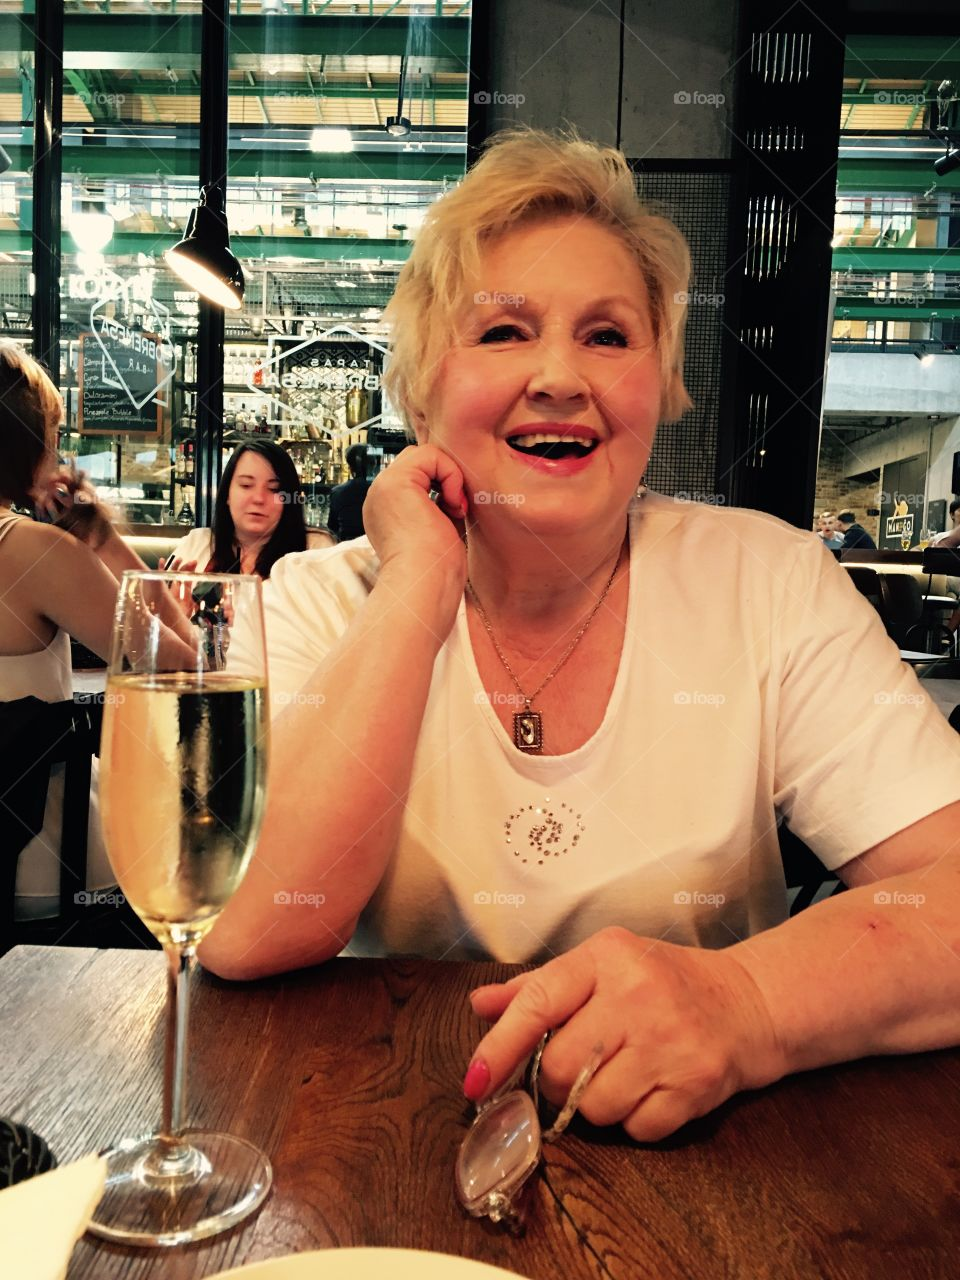 Smiling mature woman sitting with wine glass in restaurant